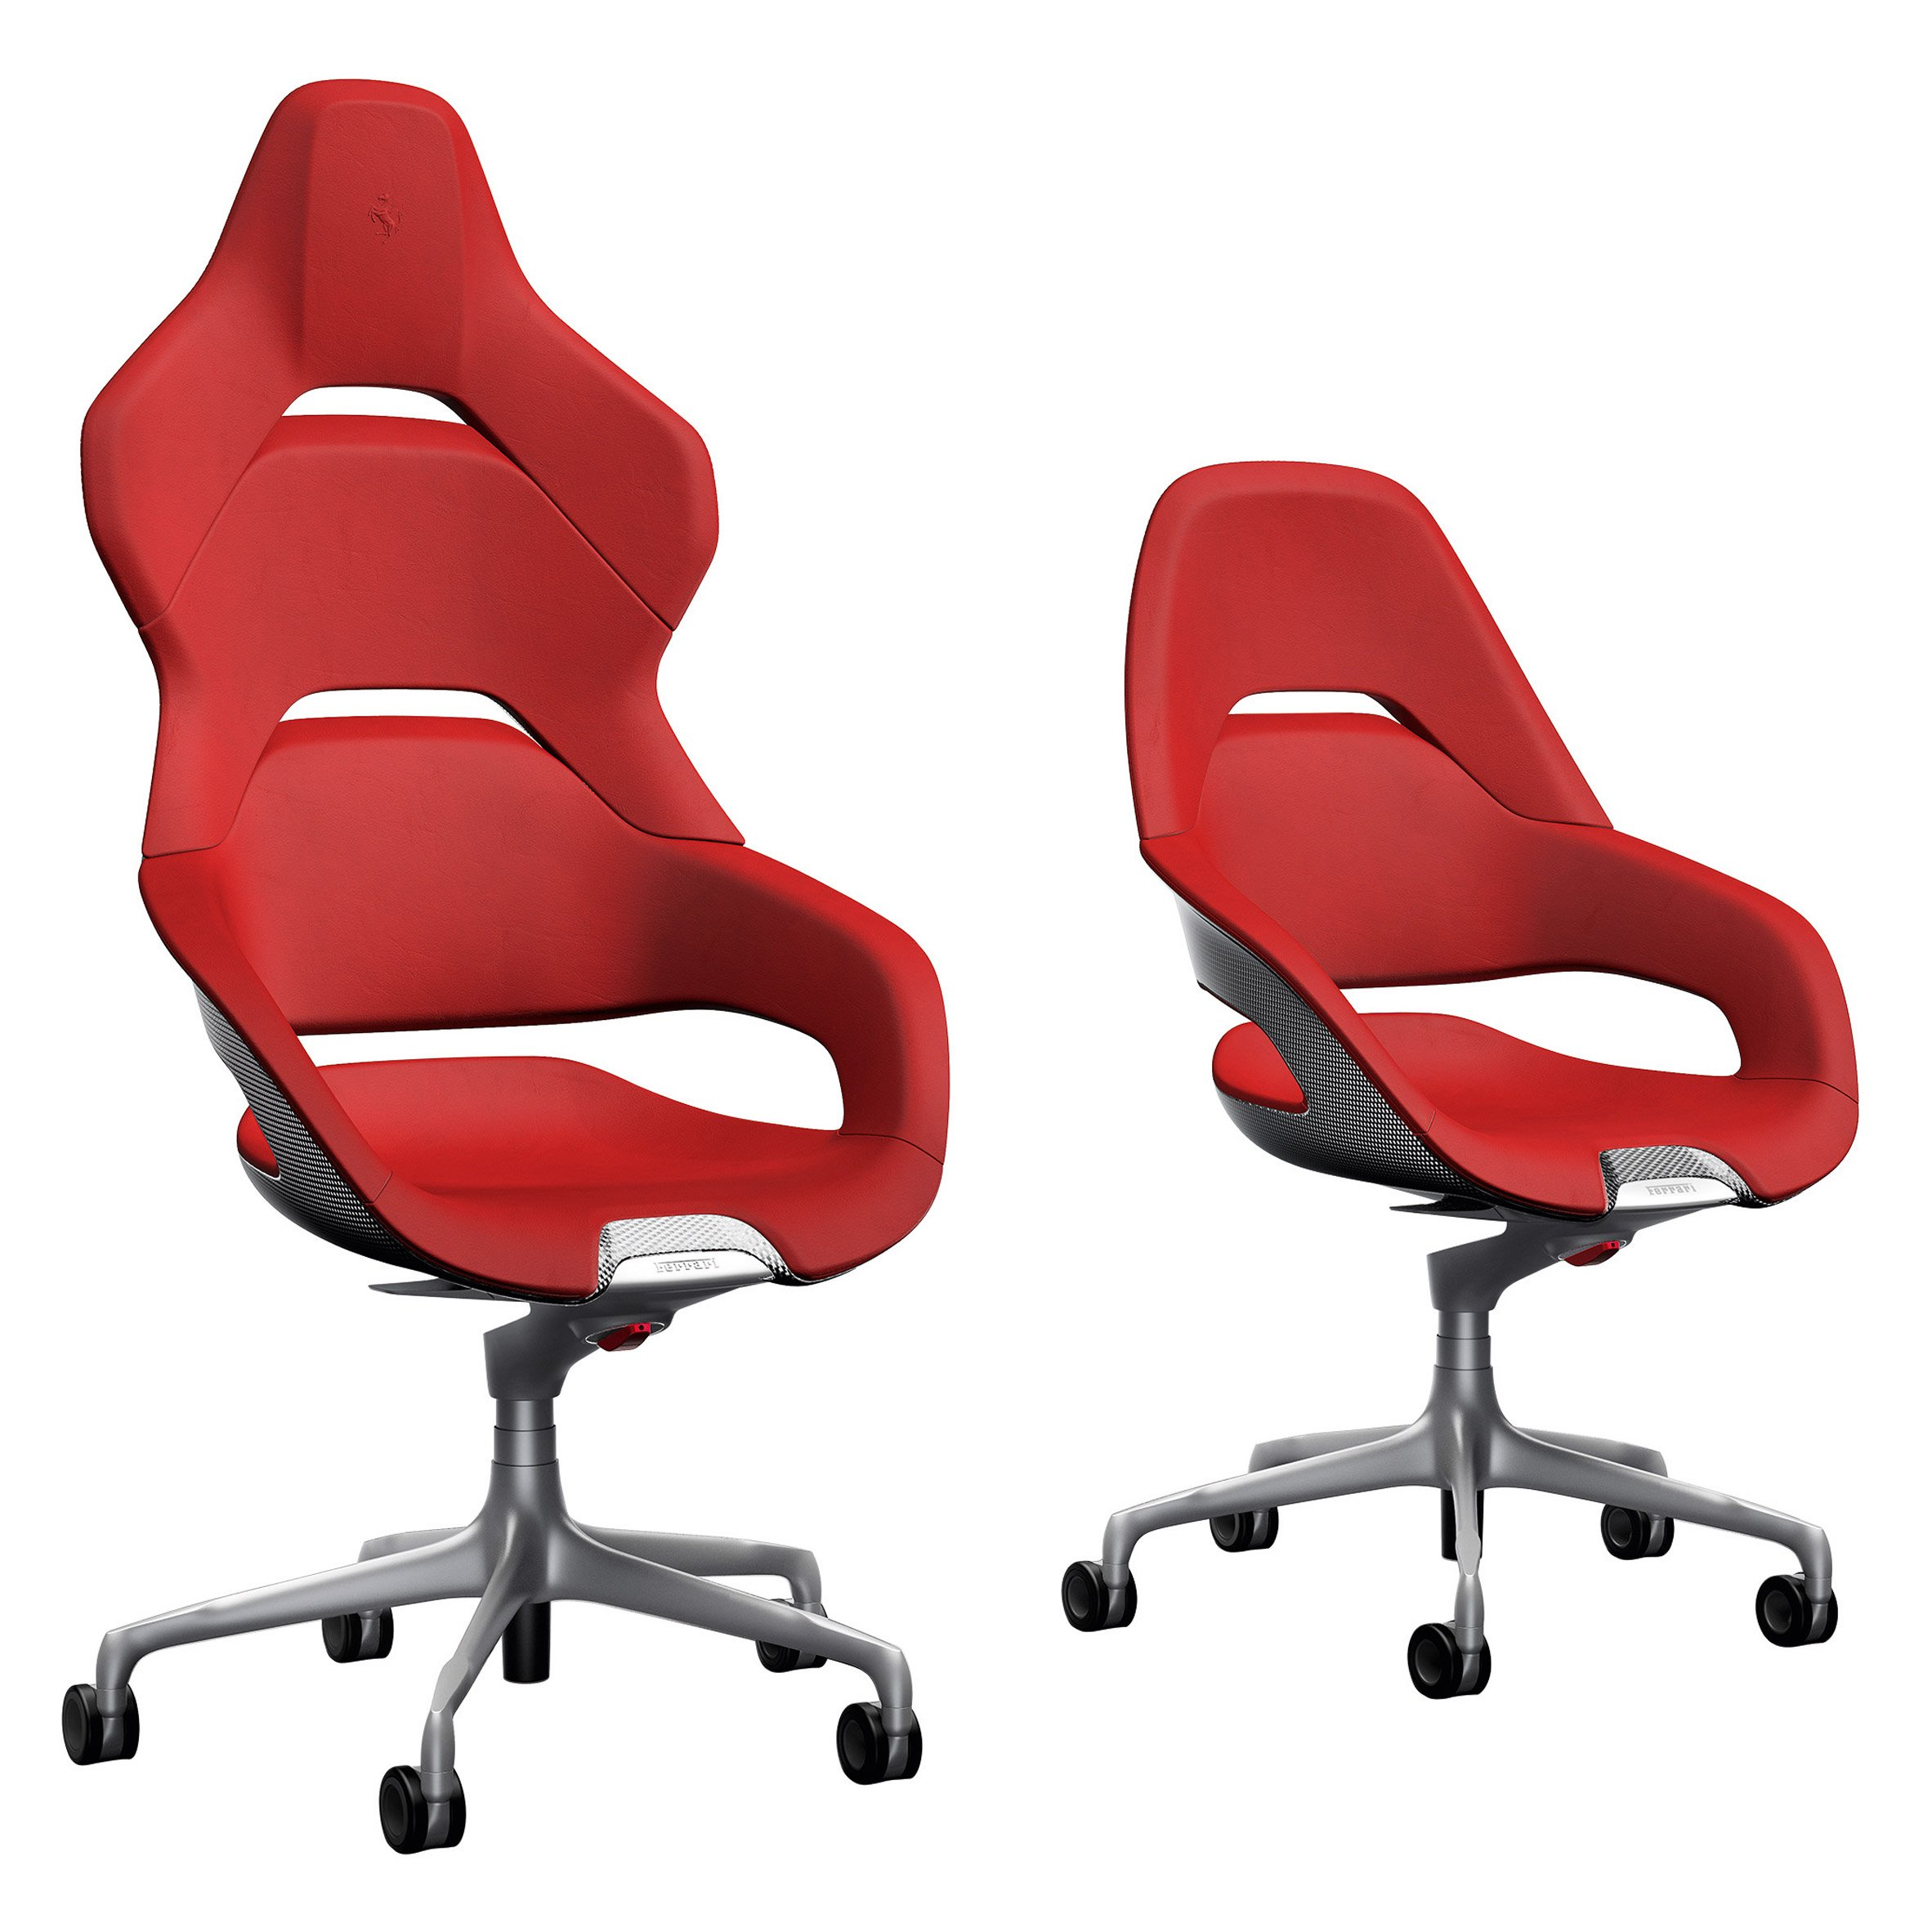 Ferrari-Cockpit-Desk-Chair-6